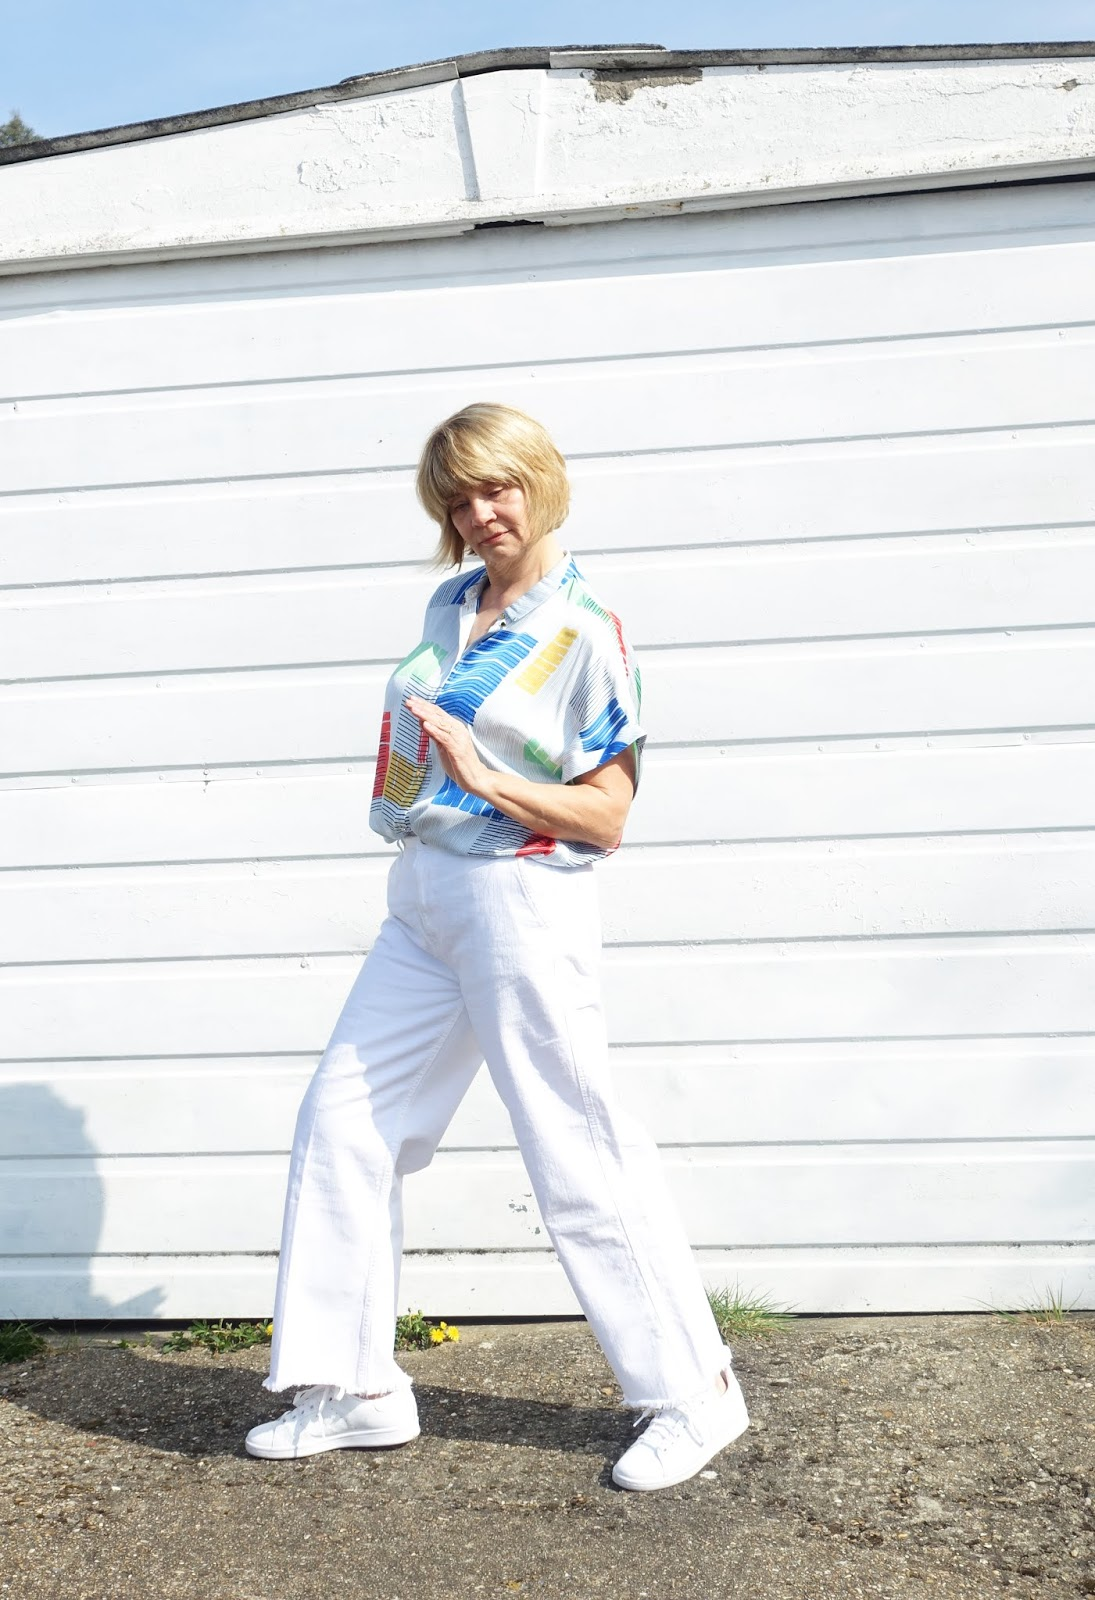 Throwing some shapes: woman in wide leg white jeans and geometric print short sleeved blouse